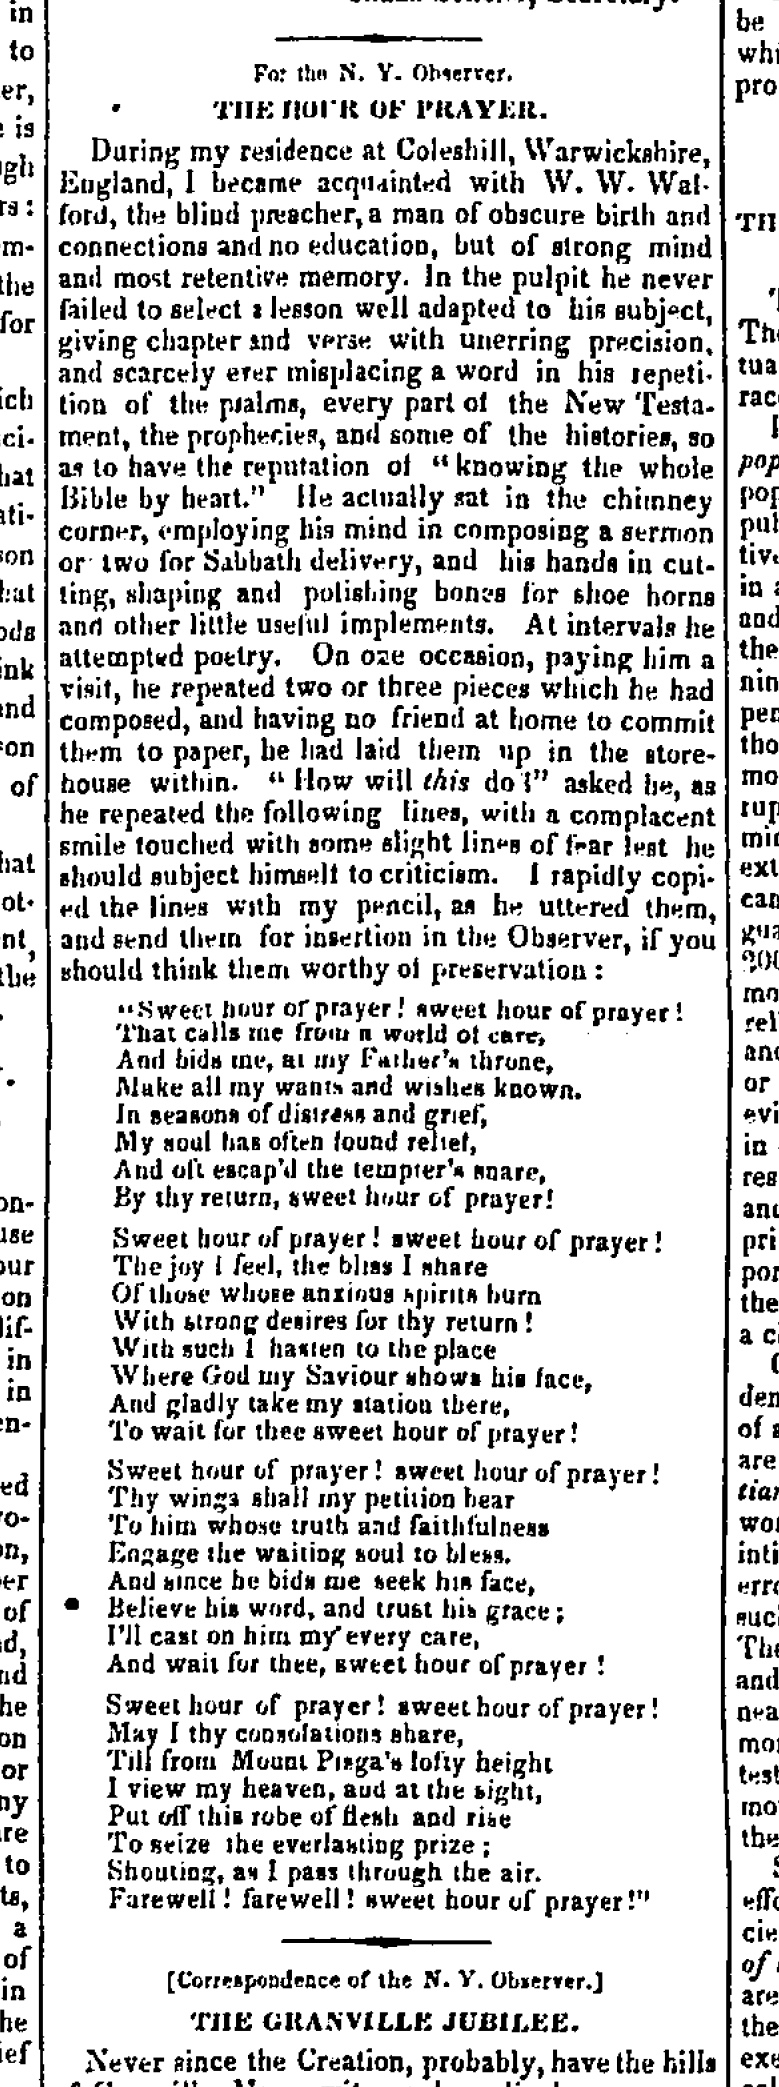 Fig. 1.   New York Observer , vol. 23, no. 37 (13 Sept. 1845), front page.